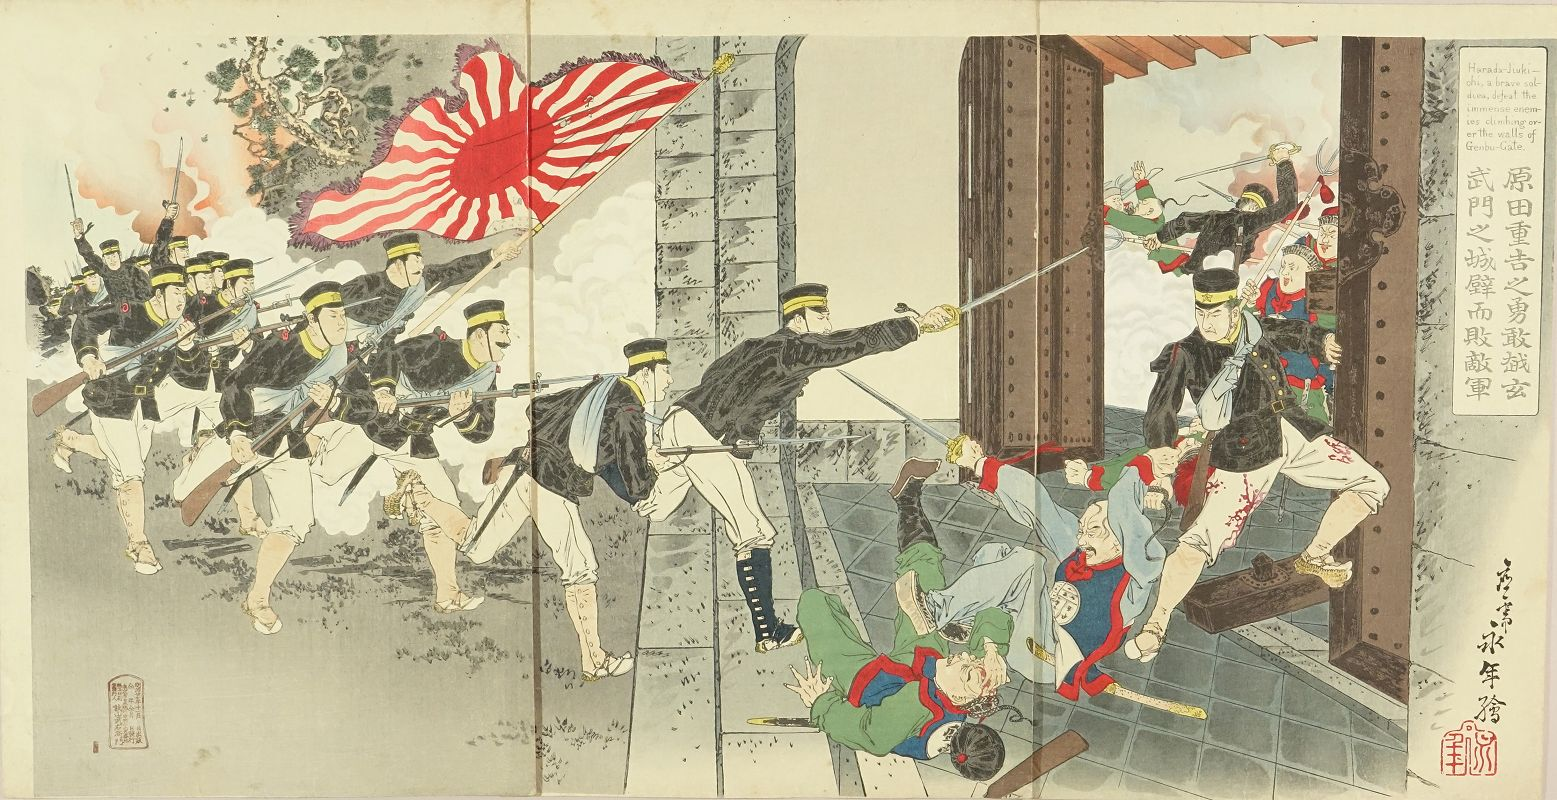 NAGATOSHI A scene of Sino-Japan war, titled in <i>English Harada-Jiukichi</i>, a brave soldier, defeat the immense enemies climbing over the walls of Genbu-gate, triptych